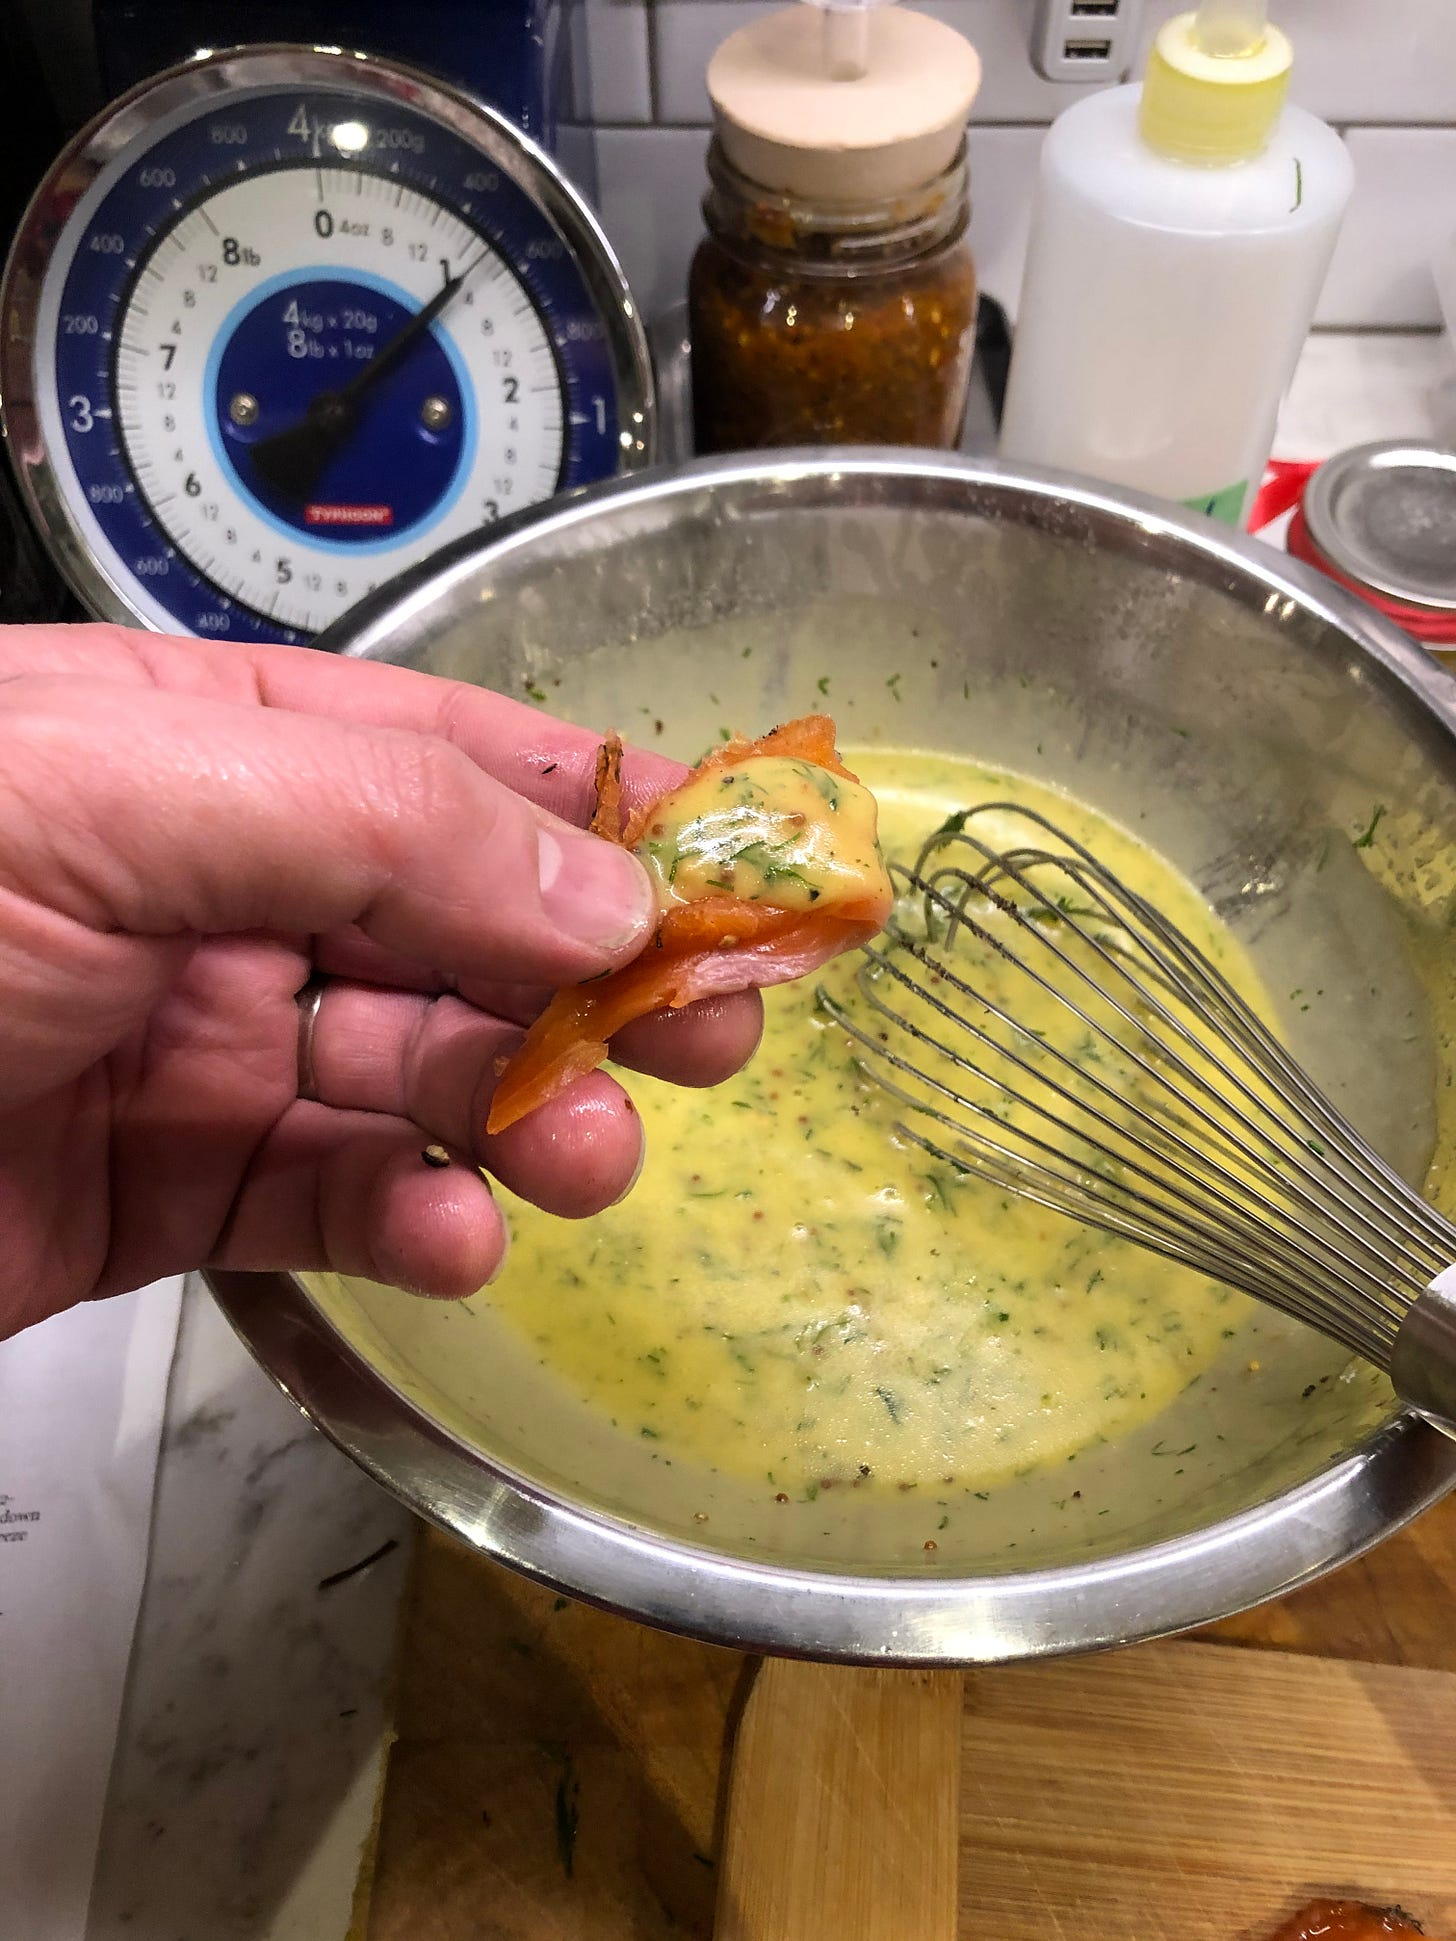 A thin slice of gravlax with a small dollop of mustard-dill sauce, being held over a mixing bowl of just-made sauce.